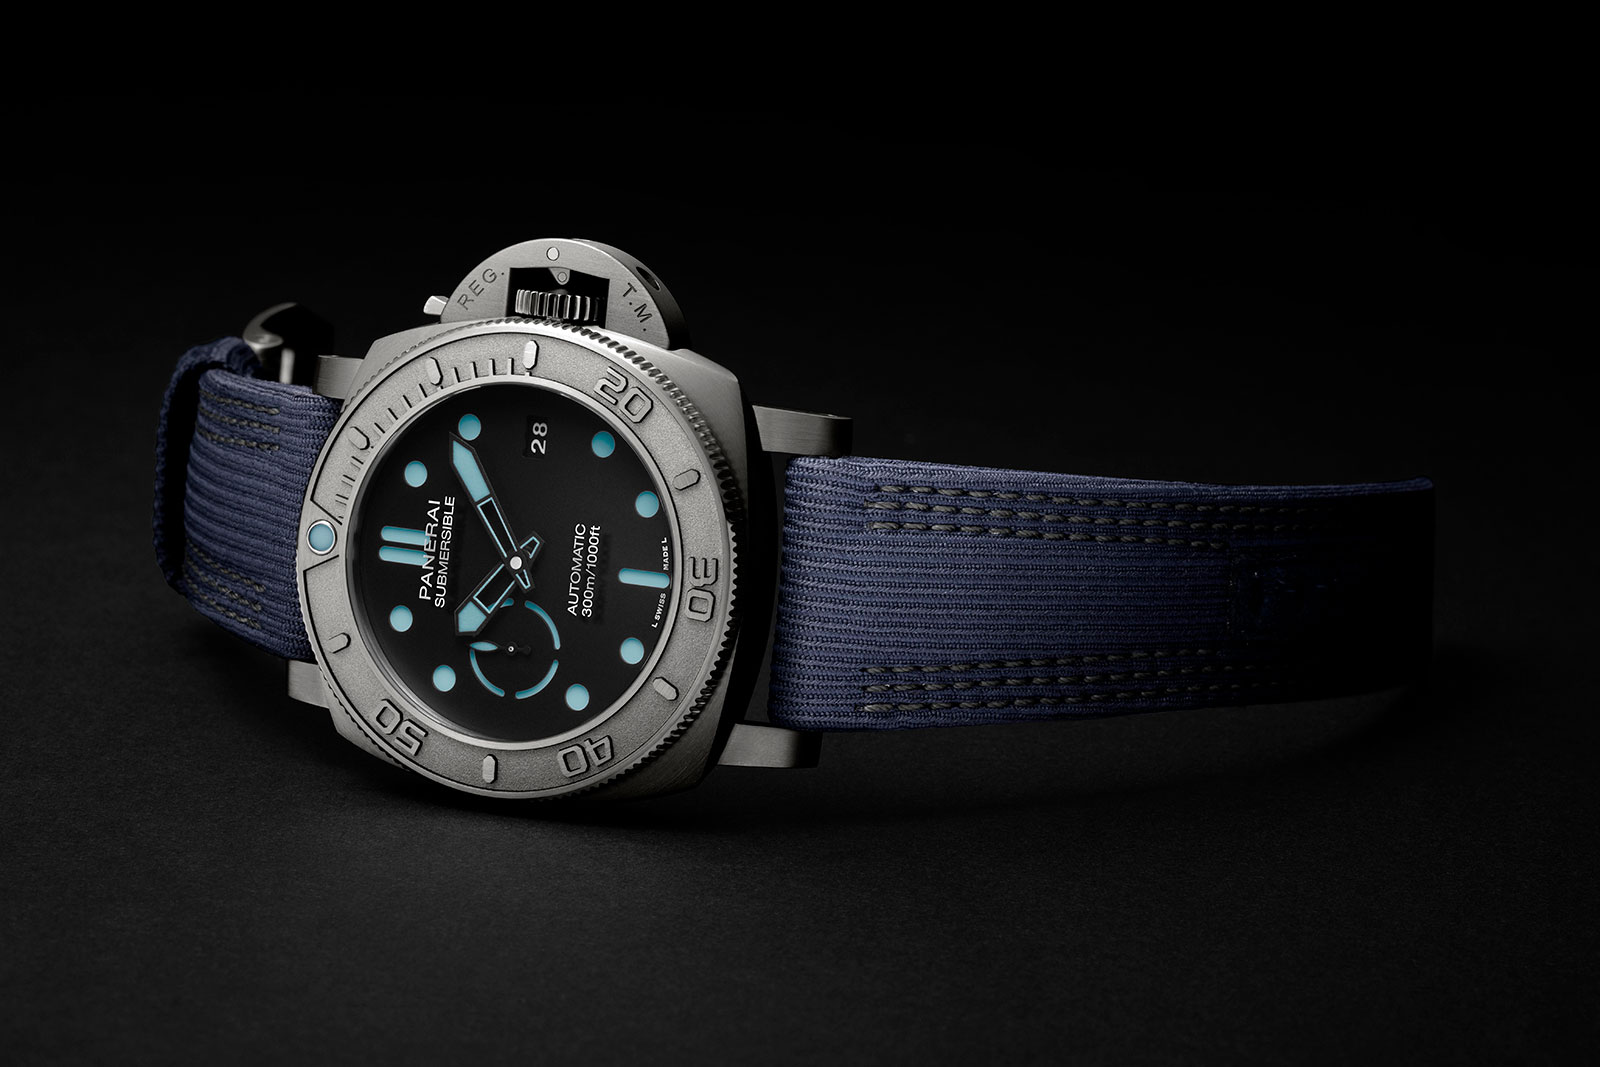 Panerai-Submersible-Mike-Horn-Pam985-3